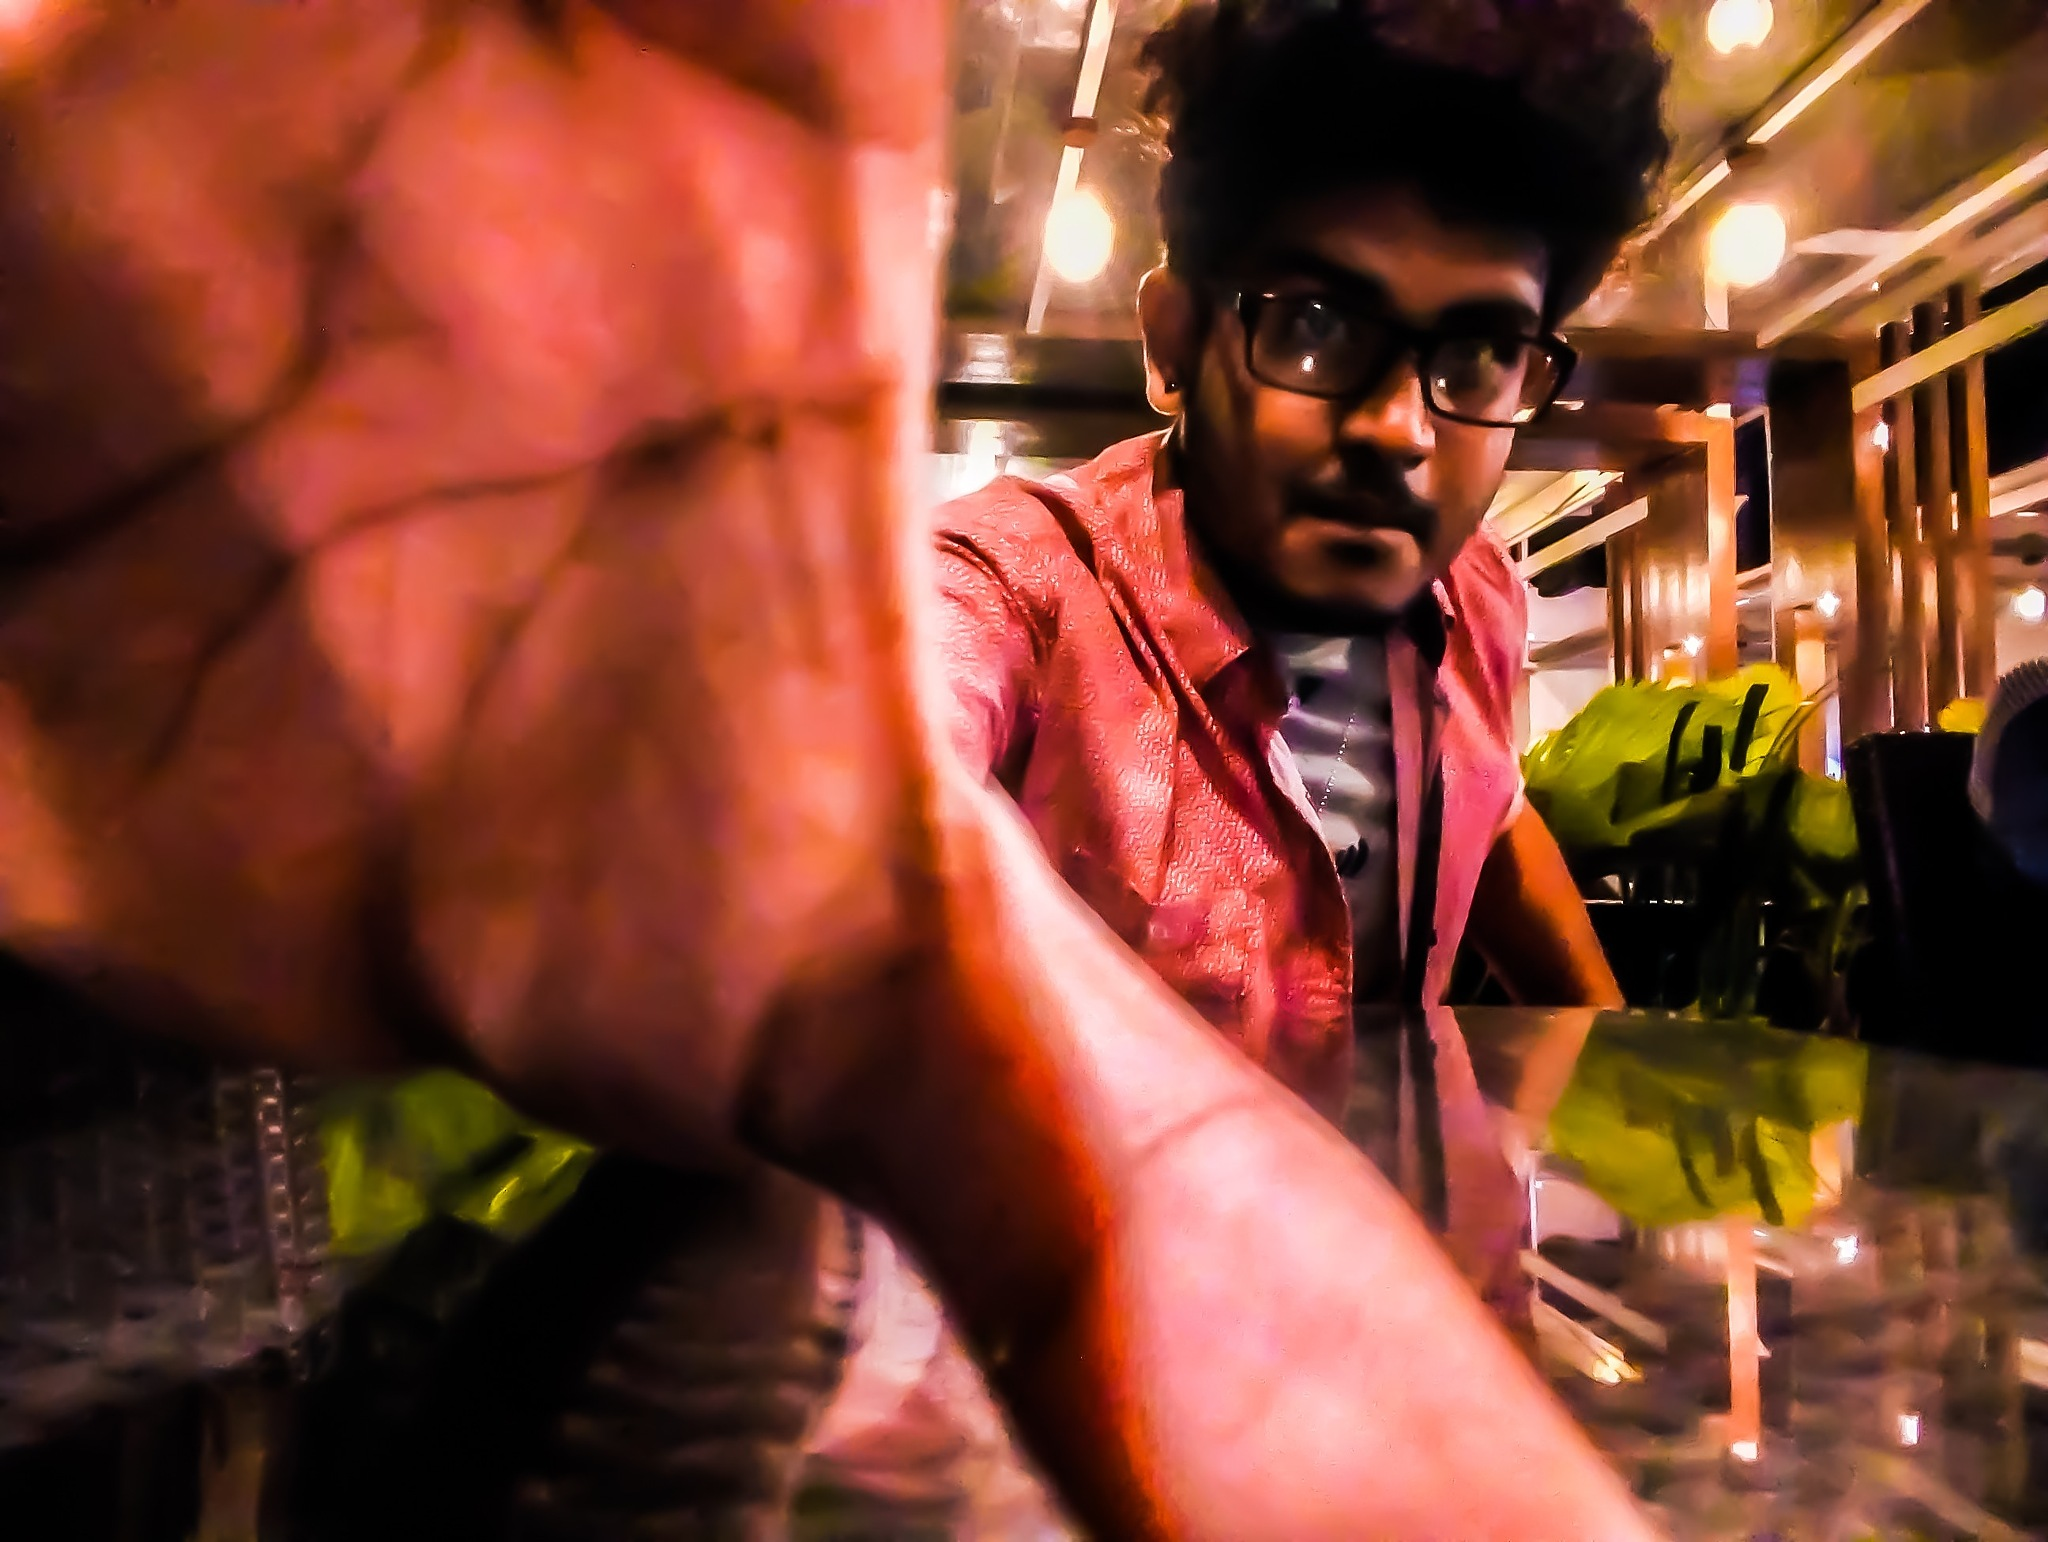 Photography addiction at peak even in selfie by Siva Arshan